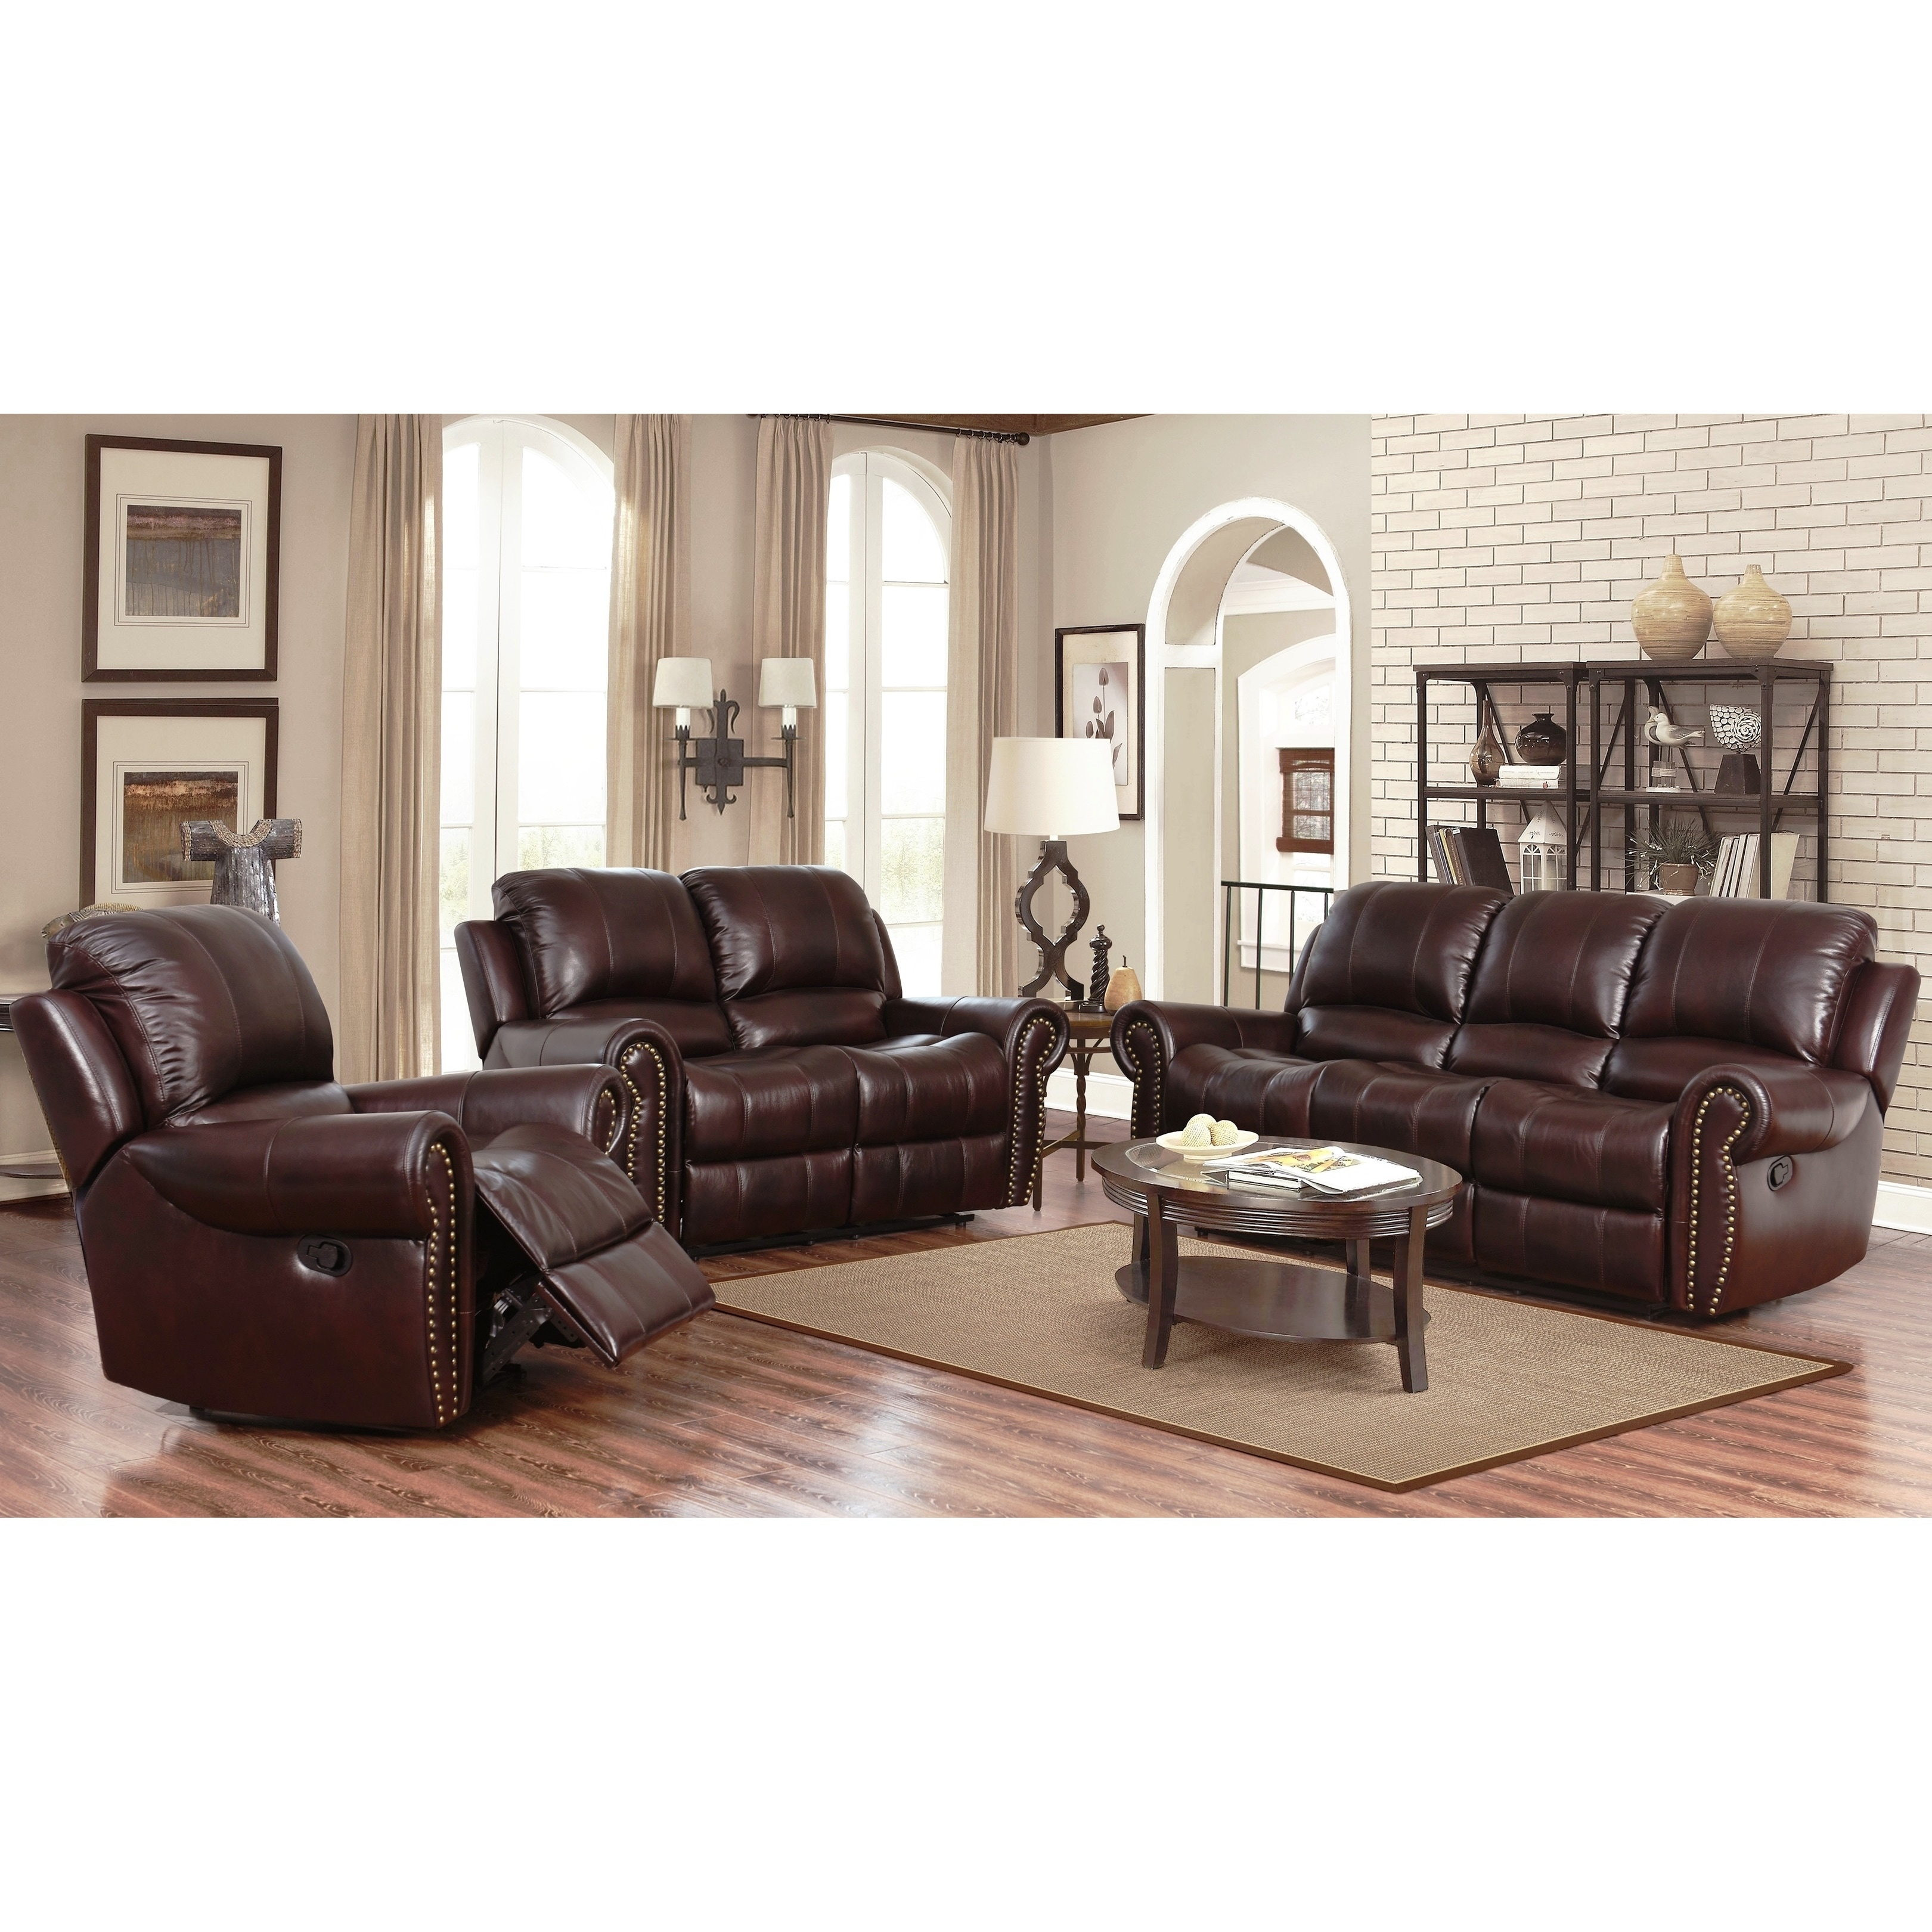 Exceptionnel Abbyson Broadway Top Grain Leather Reclining 3 Piece Living Room Set